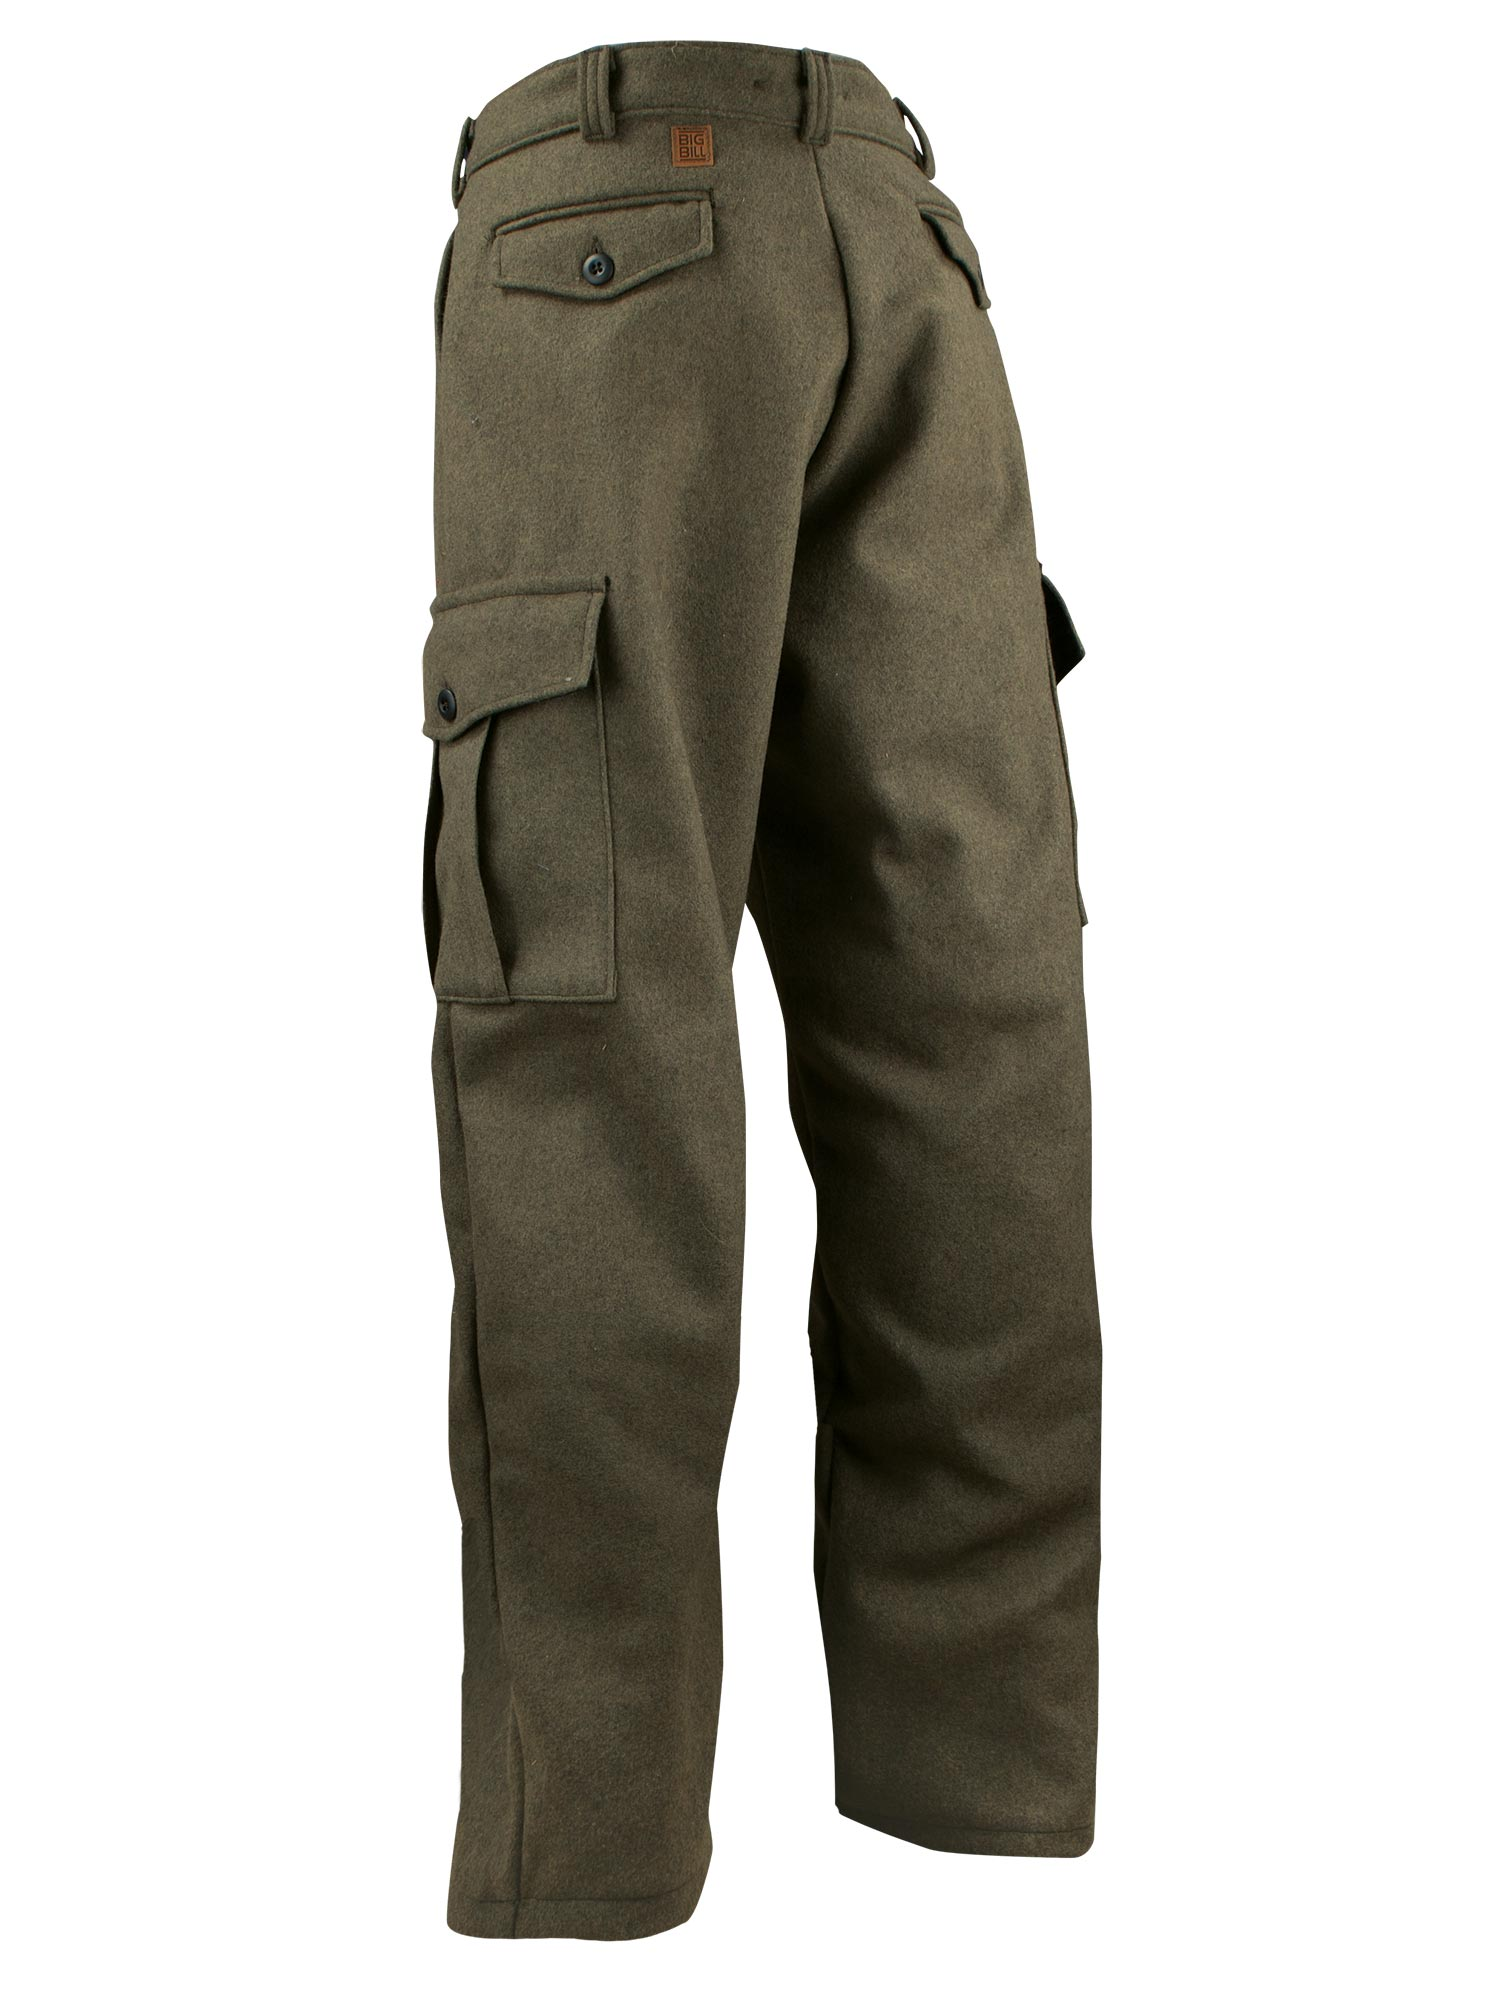 Big Bill 18 Oz Merino Wool Cargo Hunting Outdoor Pants 234mer